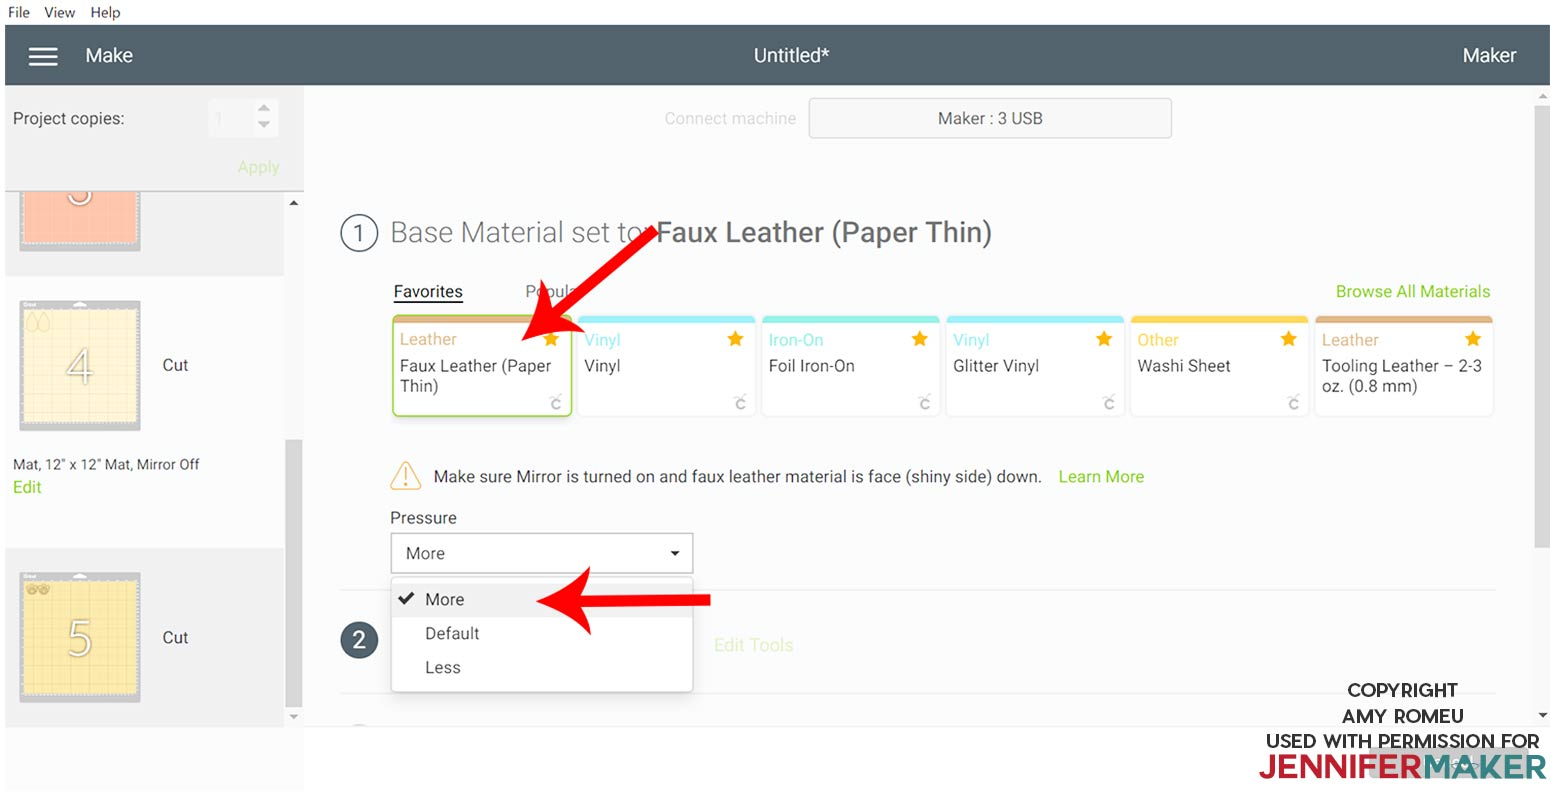 material selection screen for faux leather in Cricut Design Space